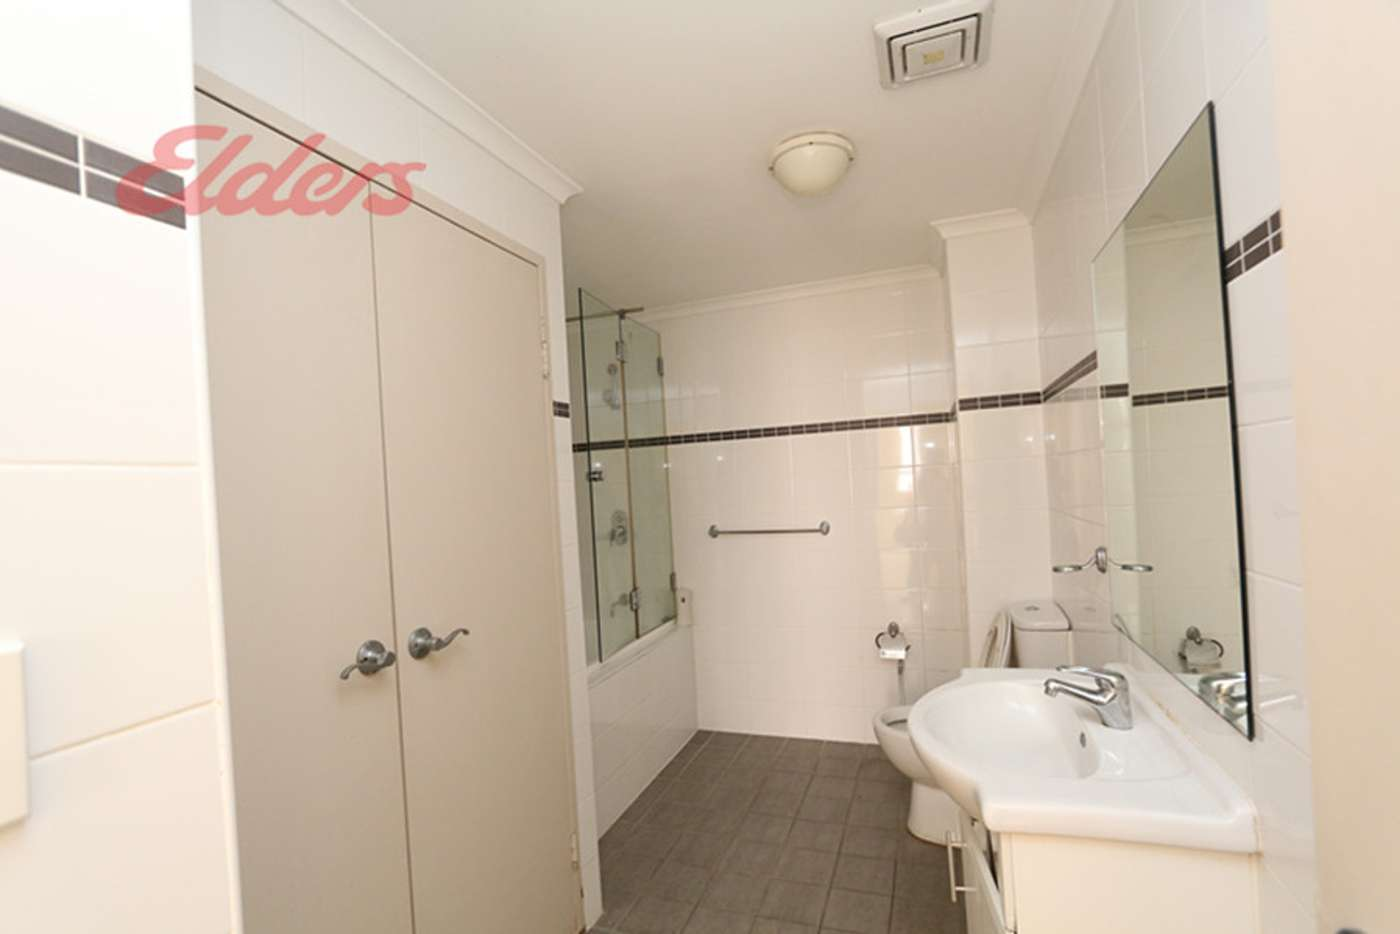 Seventh view of Homely apartment listing, 2618/62 Queen Street, Auburn NSW 2144